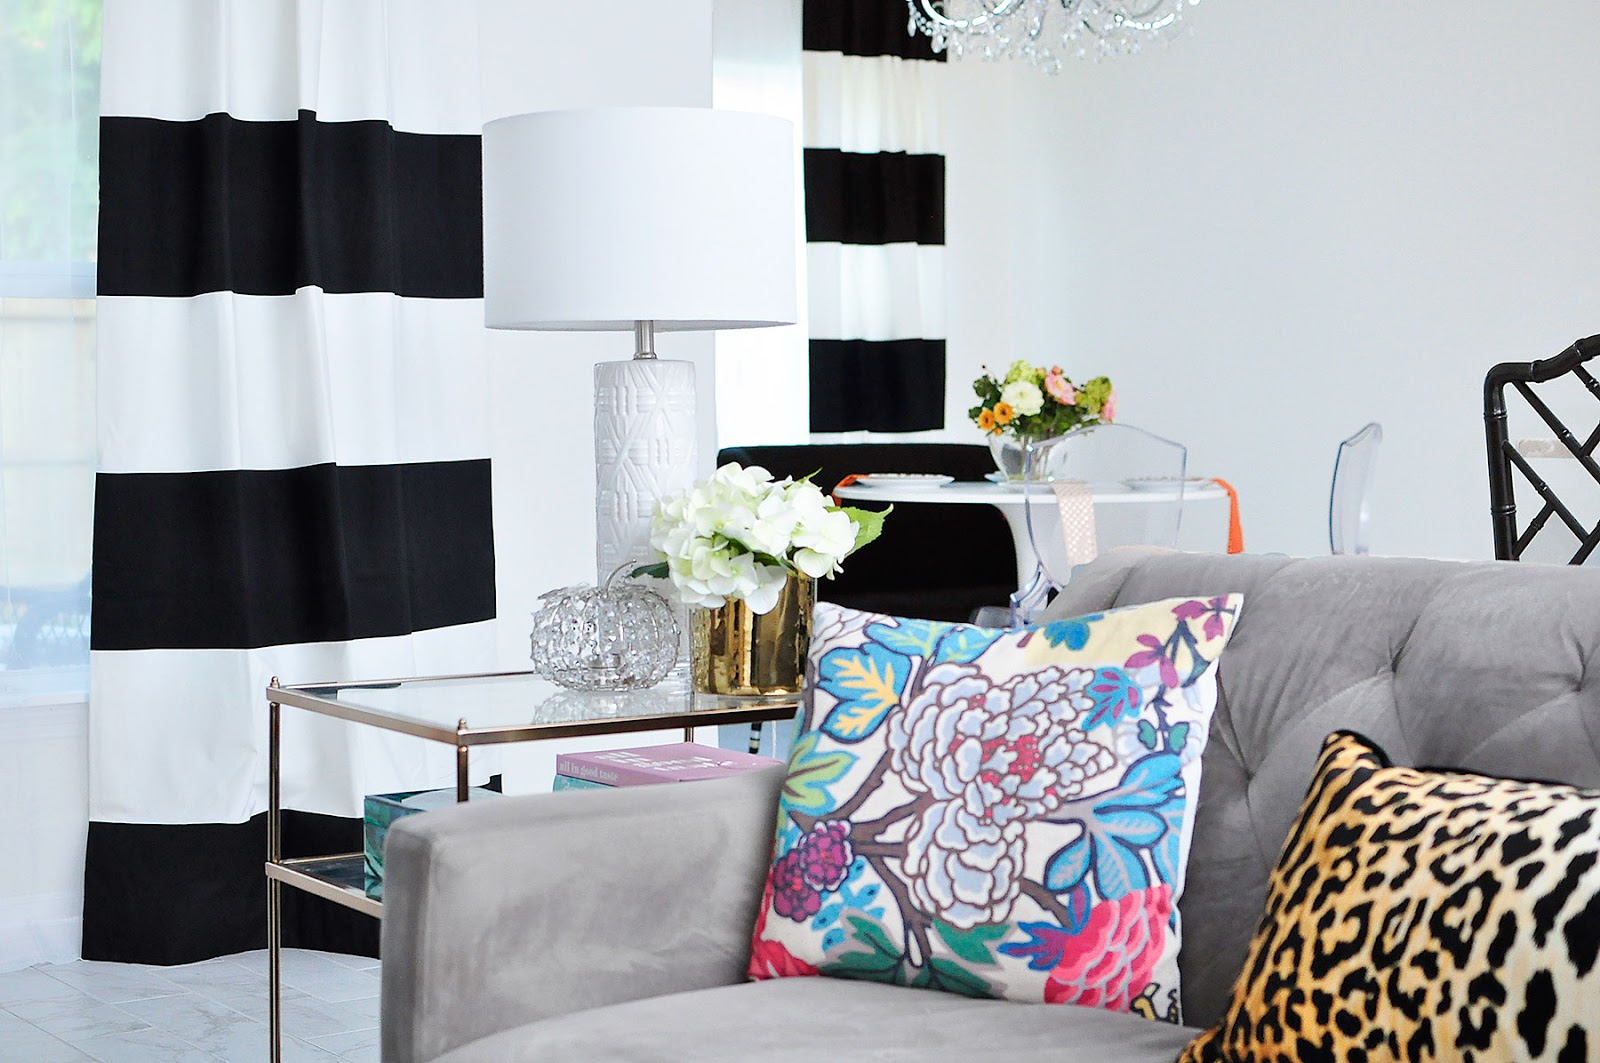 Black and white curtains in a living room with a gray sofa and colorful chinoiserie accents.